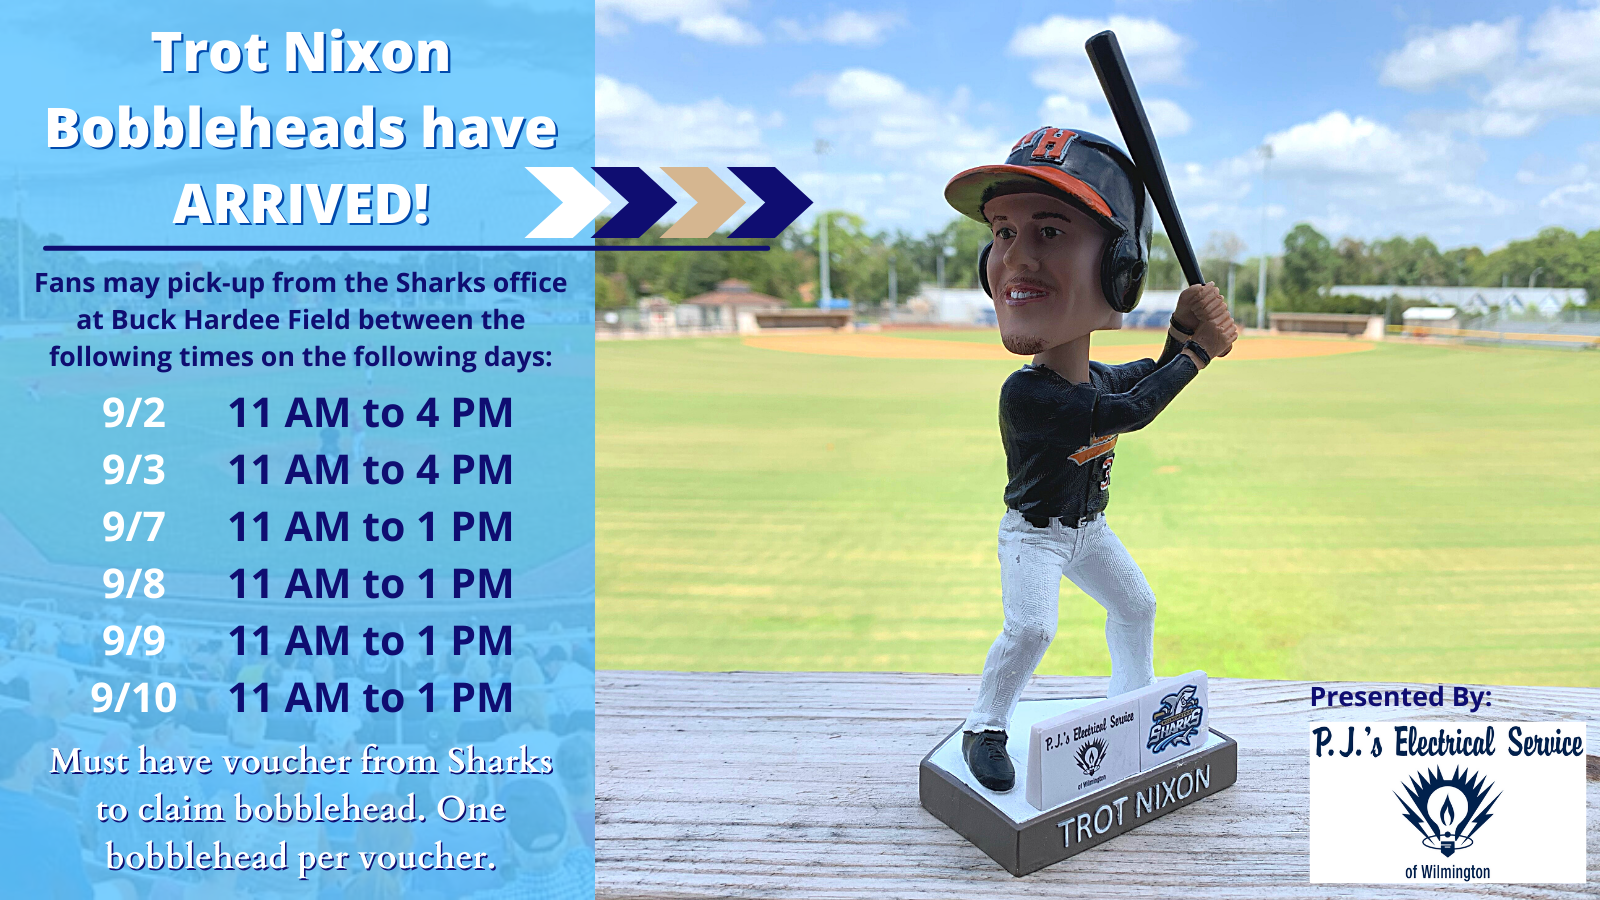 Trot Nixon Bobbleheads Available for Pick-up Beginning 9/2